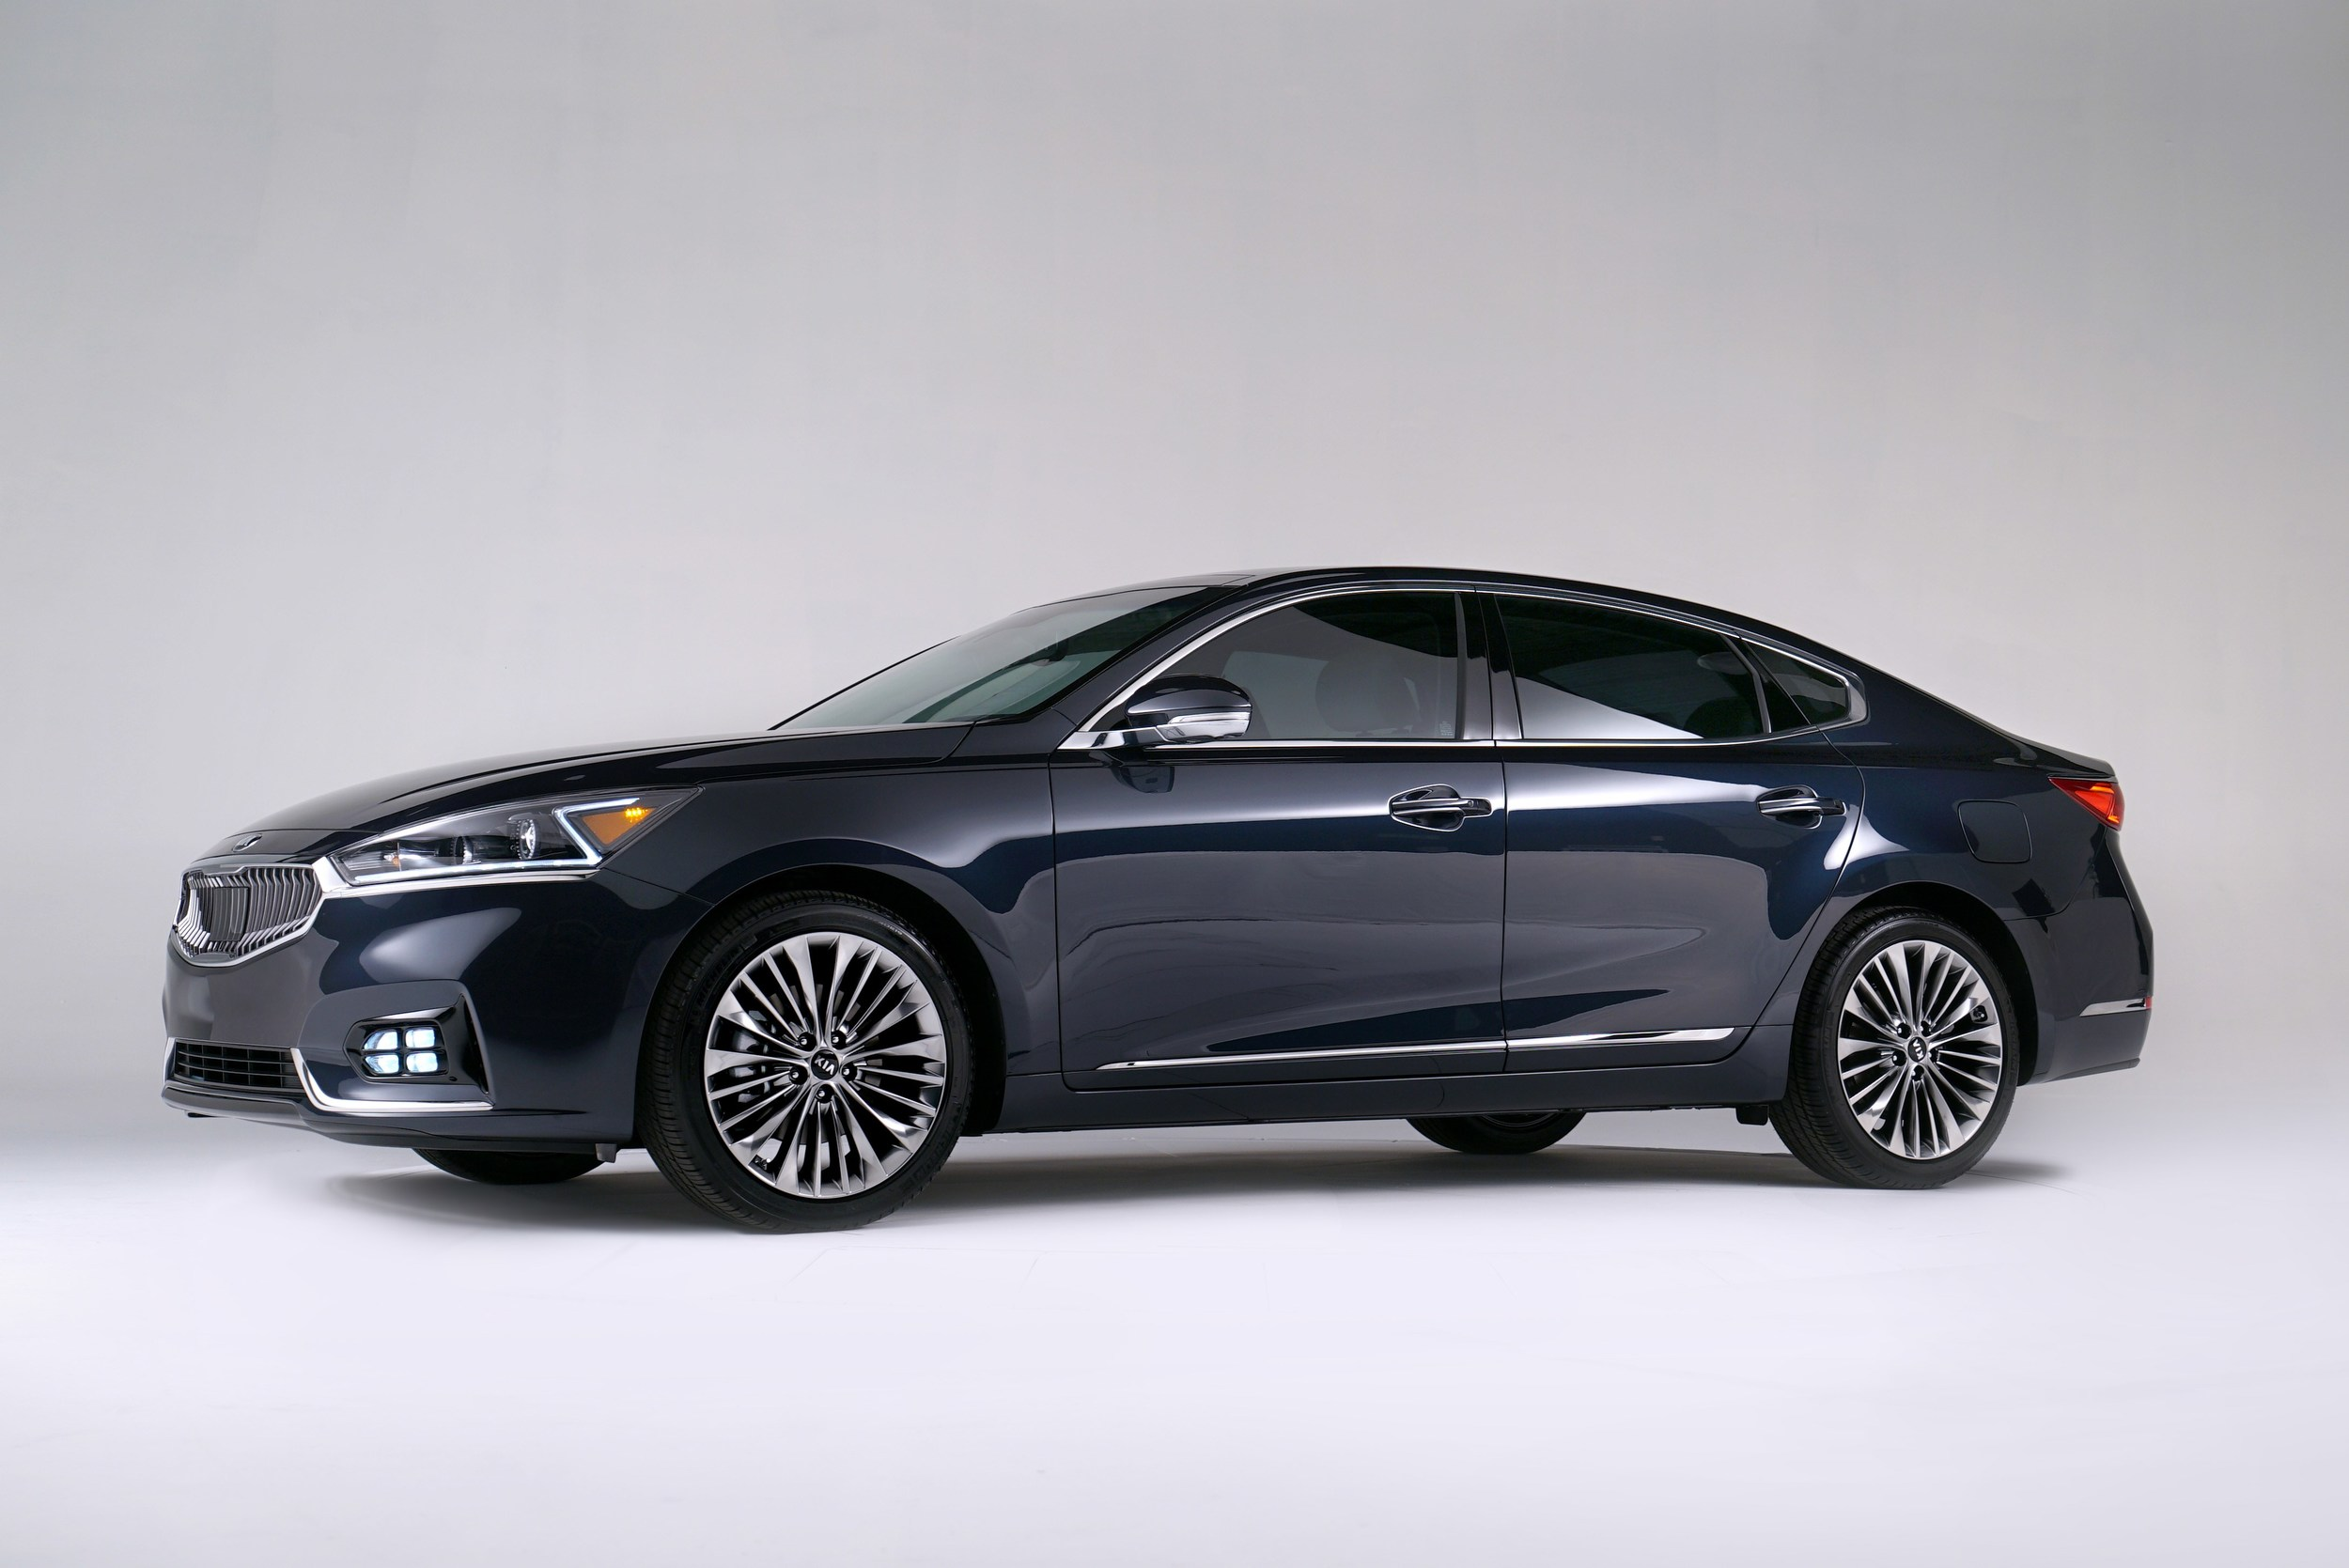 limited br new in capitol kia fwd inventory cadenza car